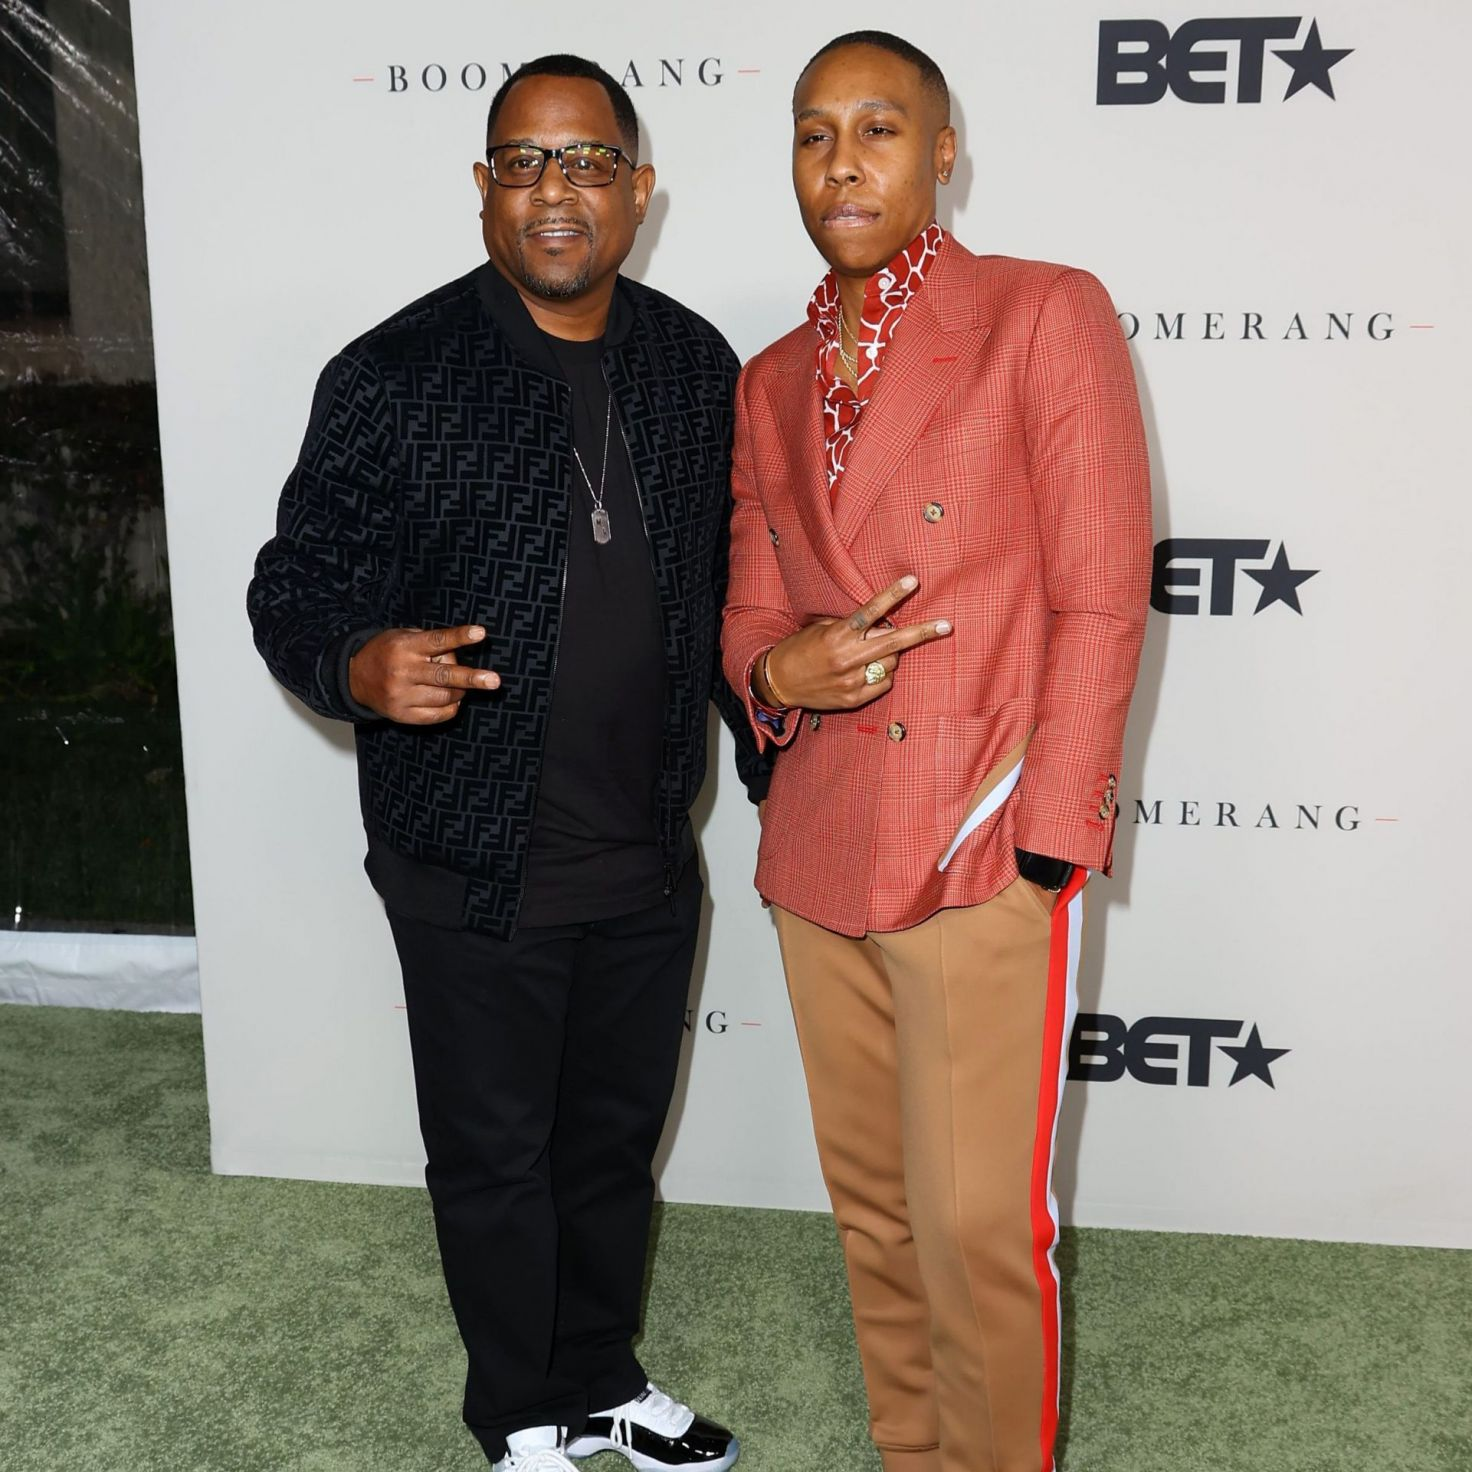 Martin Lawrence, Lena Waithe, Kandi Burruss And Other Celebs Out And About